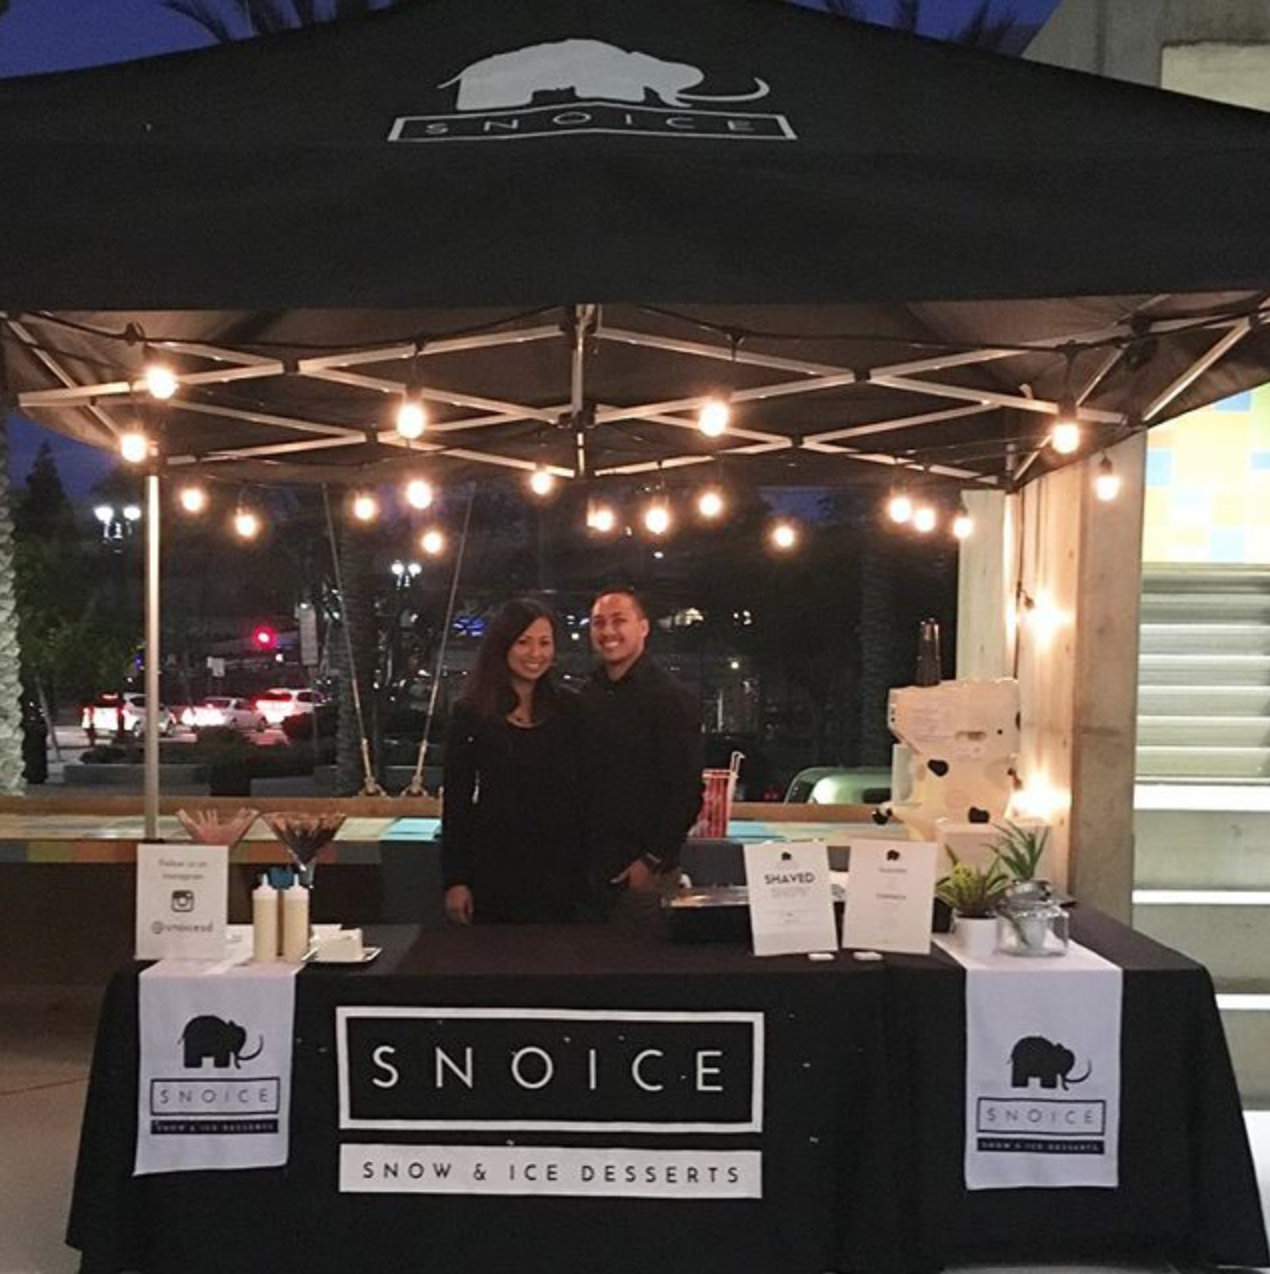 (1/2) Here's a canopy set-up we had when we served shaved snow at a wedding in early 2016.